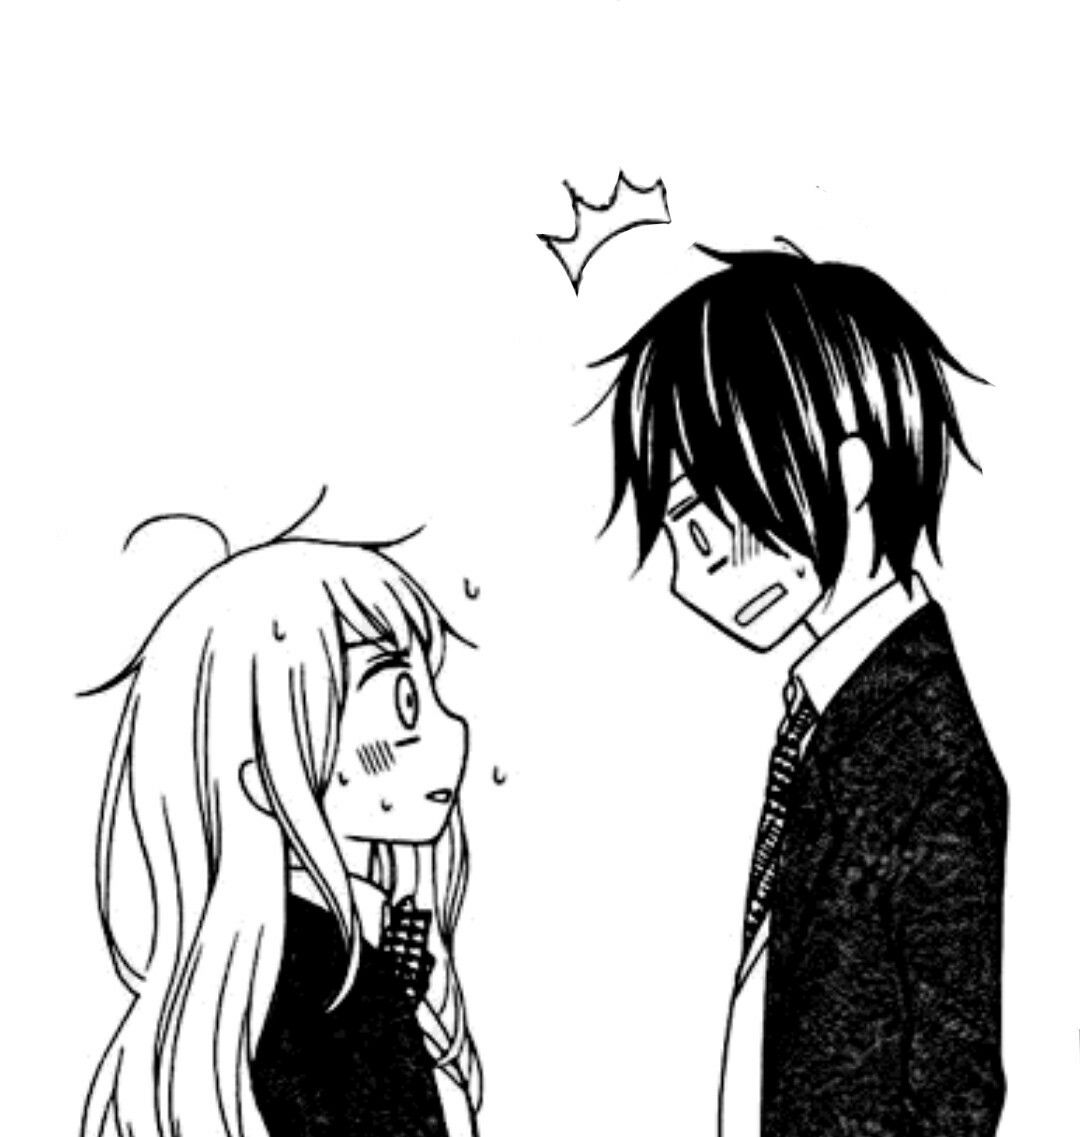 Manga shoujo couple romance love cute tumblr boy - Fotos de parejas en blanco y negro ...